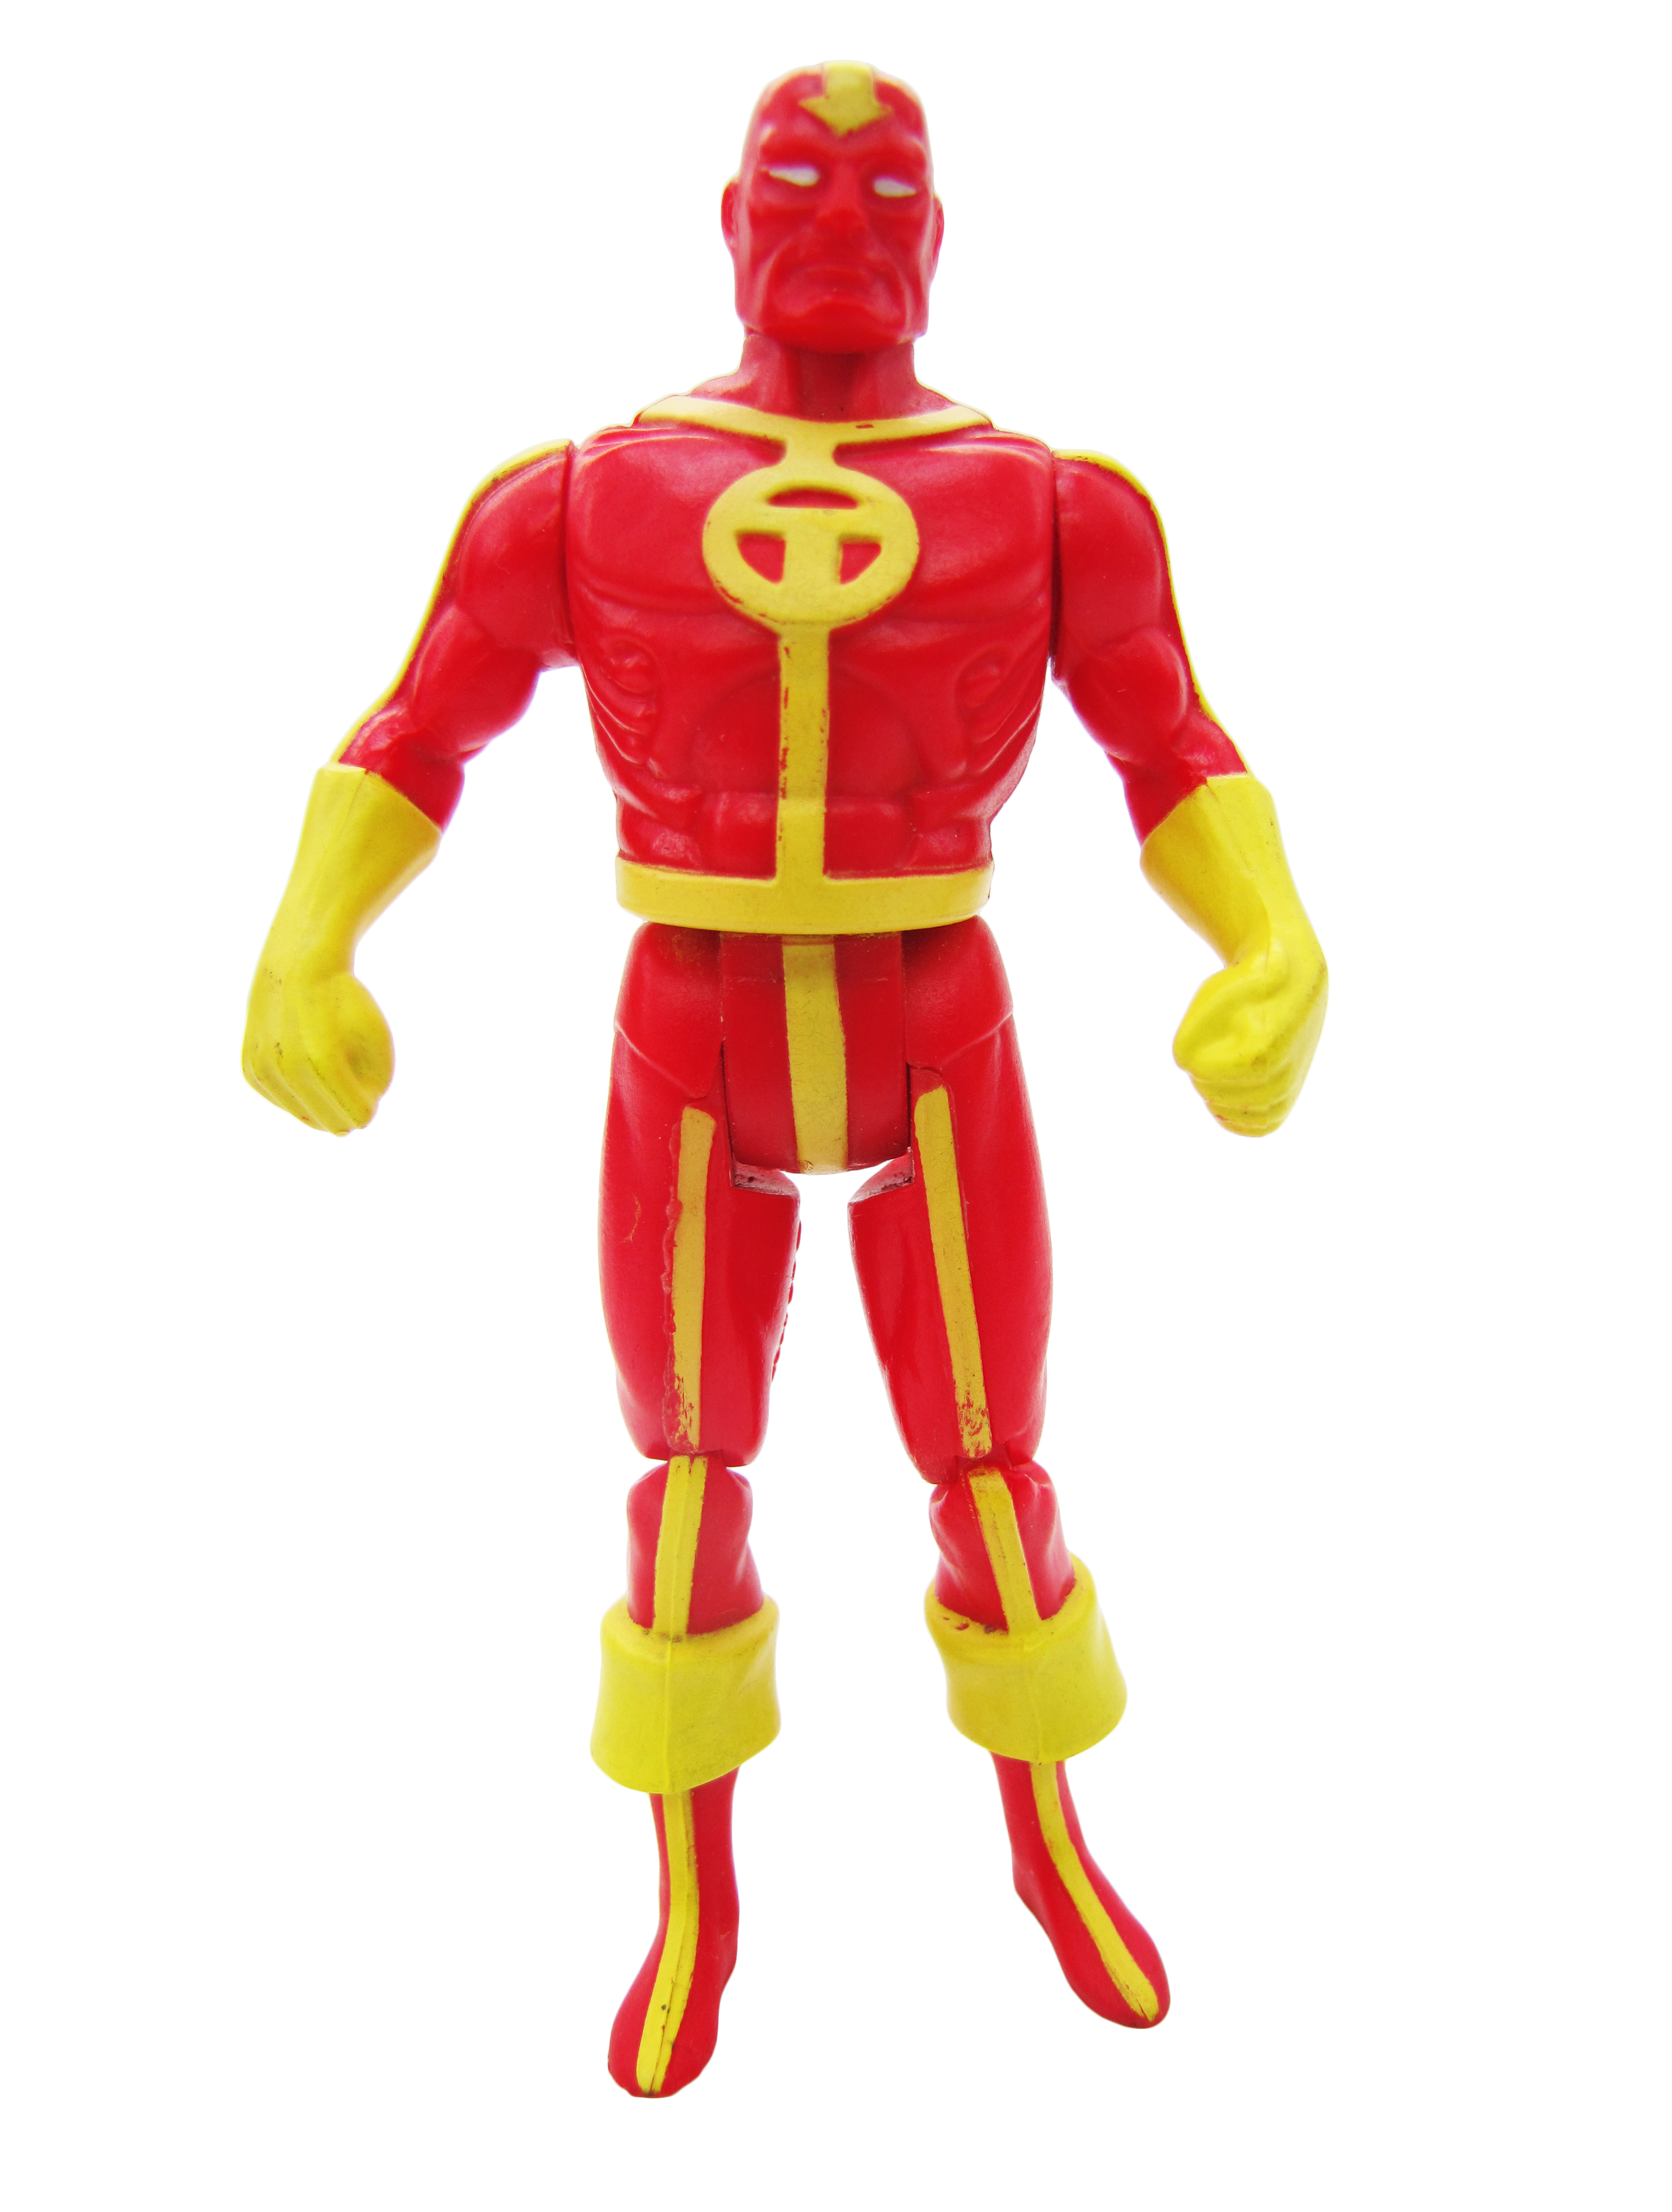 1985 DC Super Powers Collection RED TORNADO Great Condition